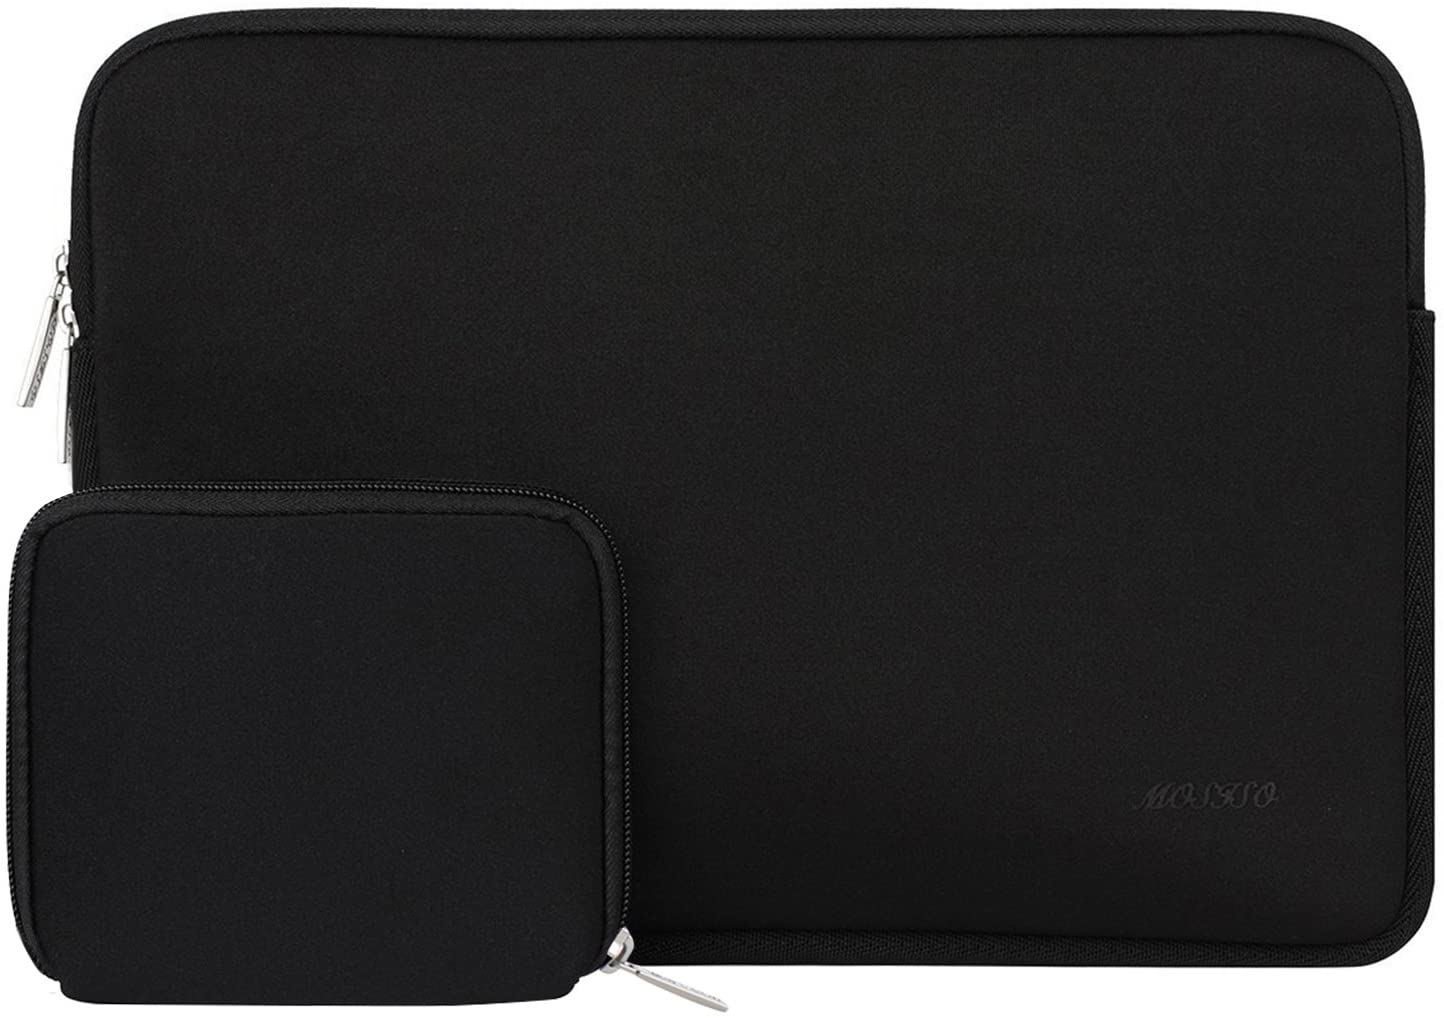 MOSISO Laptop Sleeve Compatible with 11.6-12.3 inch Acer Chromebook R11/HP Stream/Samsung/Lenovo/ASUS/MacBook Air 11/Surface Pro X/7/6/5/4/3, Water Repellent Neoprene Bag with Small Case, Black